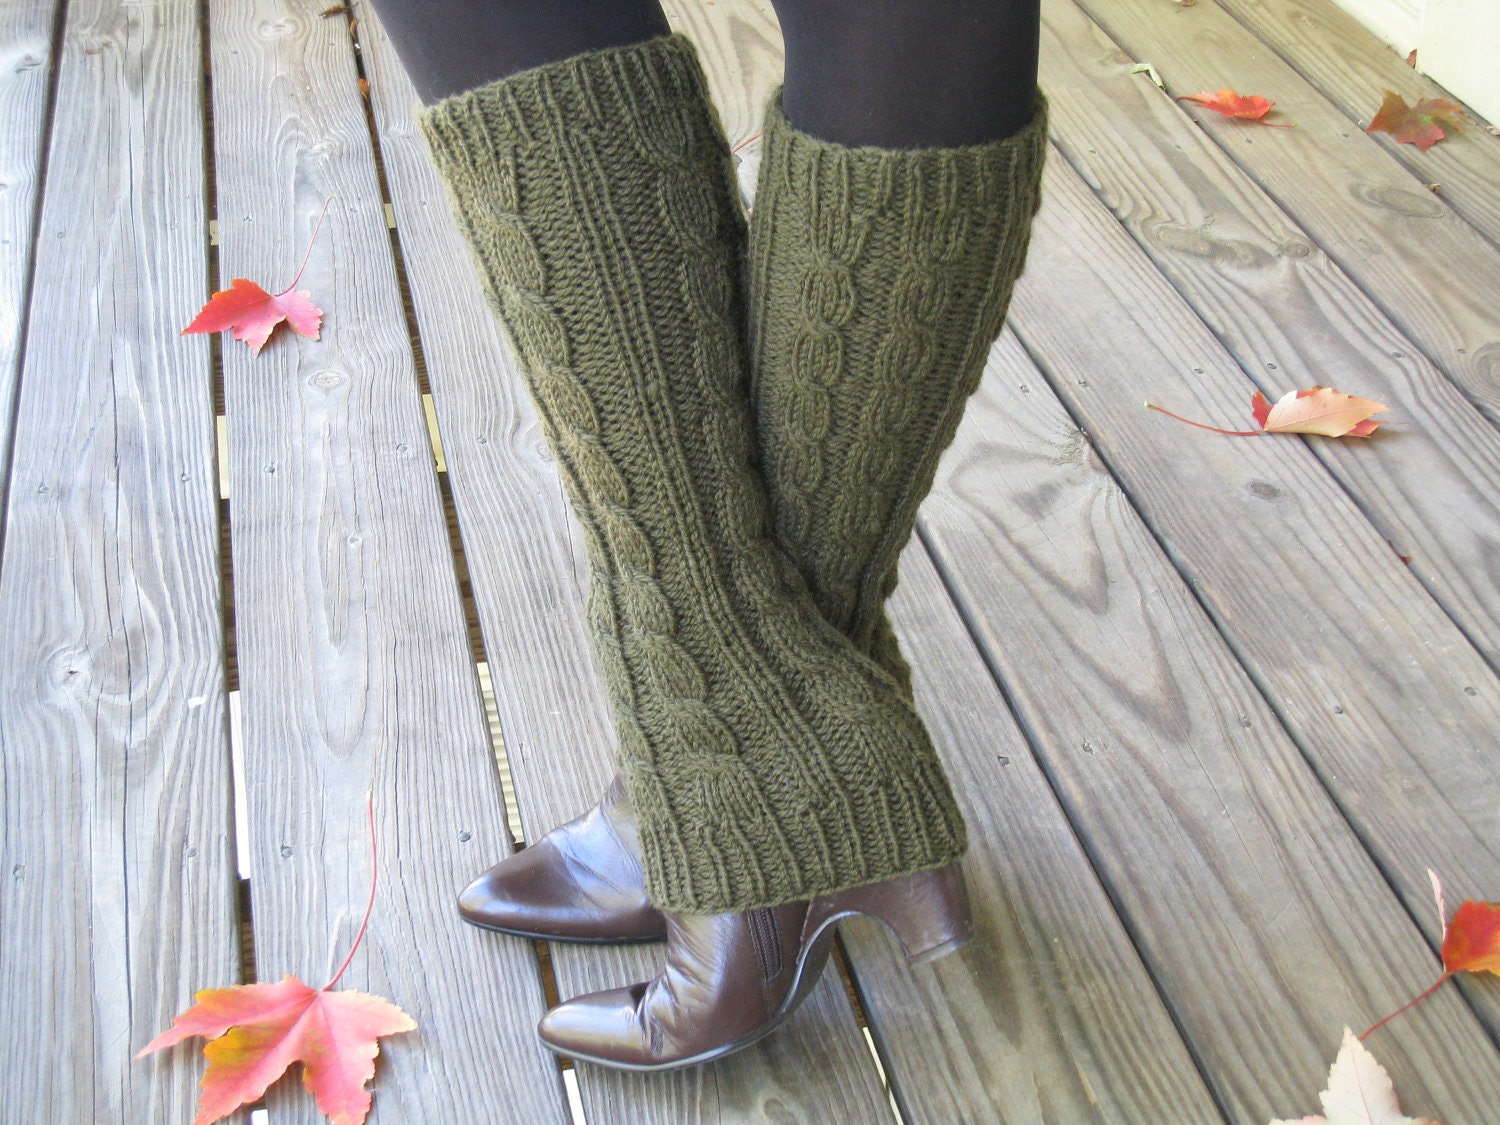 Knit Leg Warmers Cable Pattern : Cable knit Leg Warmers Boot Cuffs Boot Cover Ugg 100%